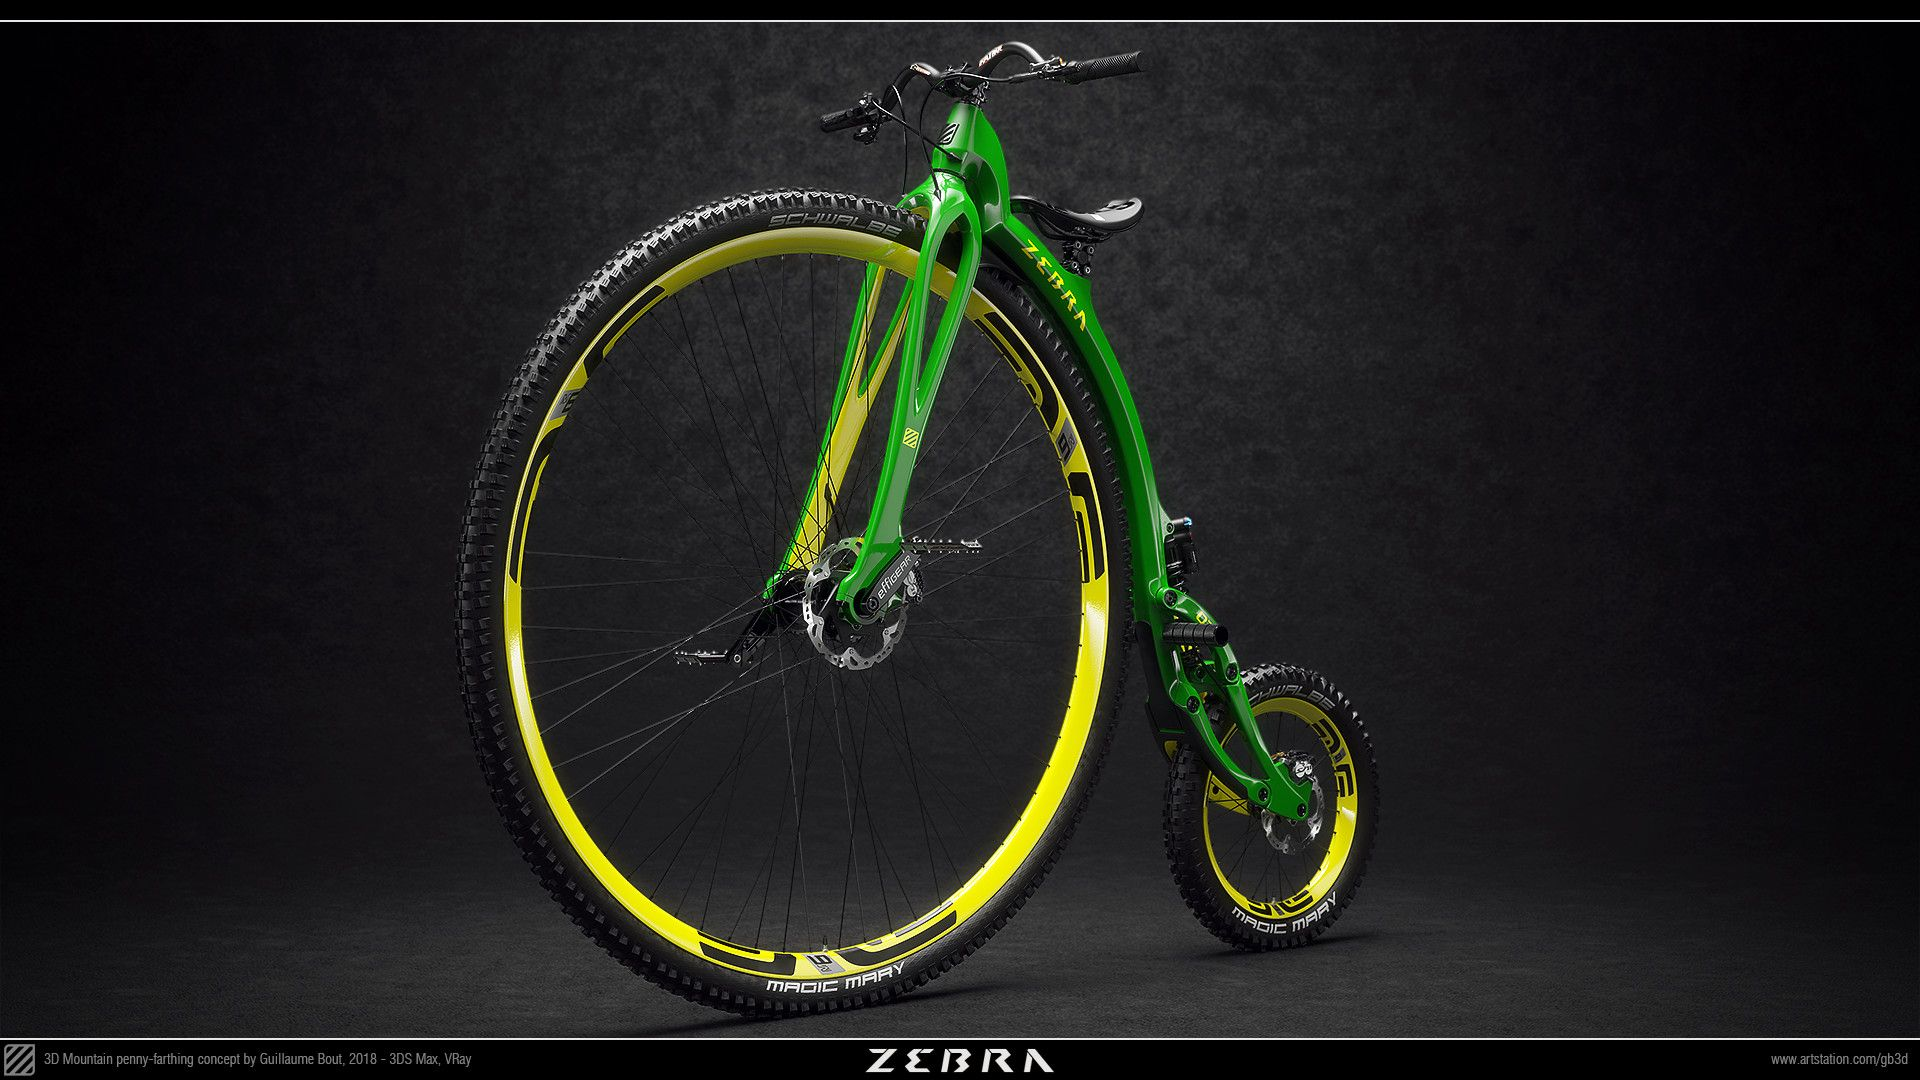 Artstation Zebra Otb 21st Century Mountain Penny Farthing Guillaume Bout Penny Farthing Vintage Bicycles 21st Century